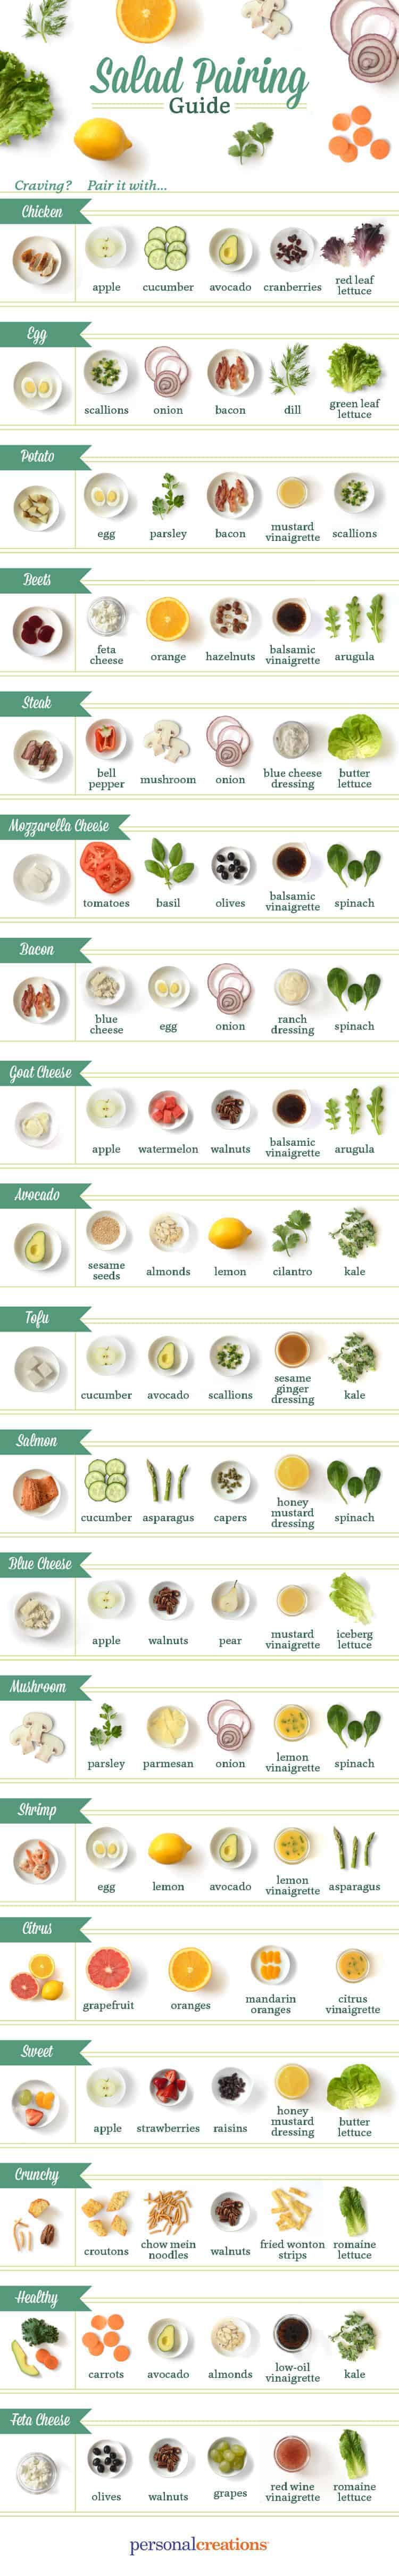 Are you bored of your normal salad routine? Sometimes it is hard to be creative in the kitchen and popular foods like bacon and eggs, peanut butter and jelly and steak and potatoes prove that flavors work better in pairs. This handy salad pairing guide will help get you out of your rut. *Pinning this for later!